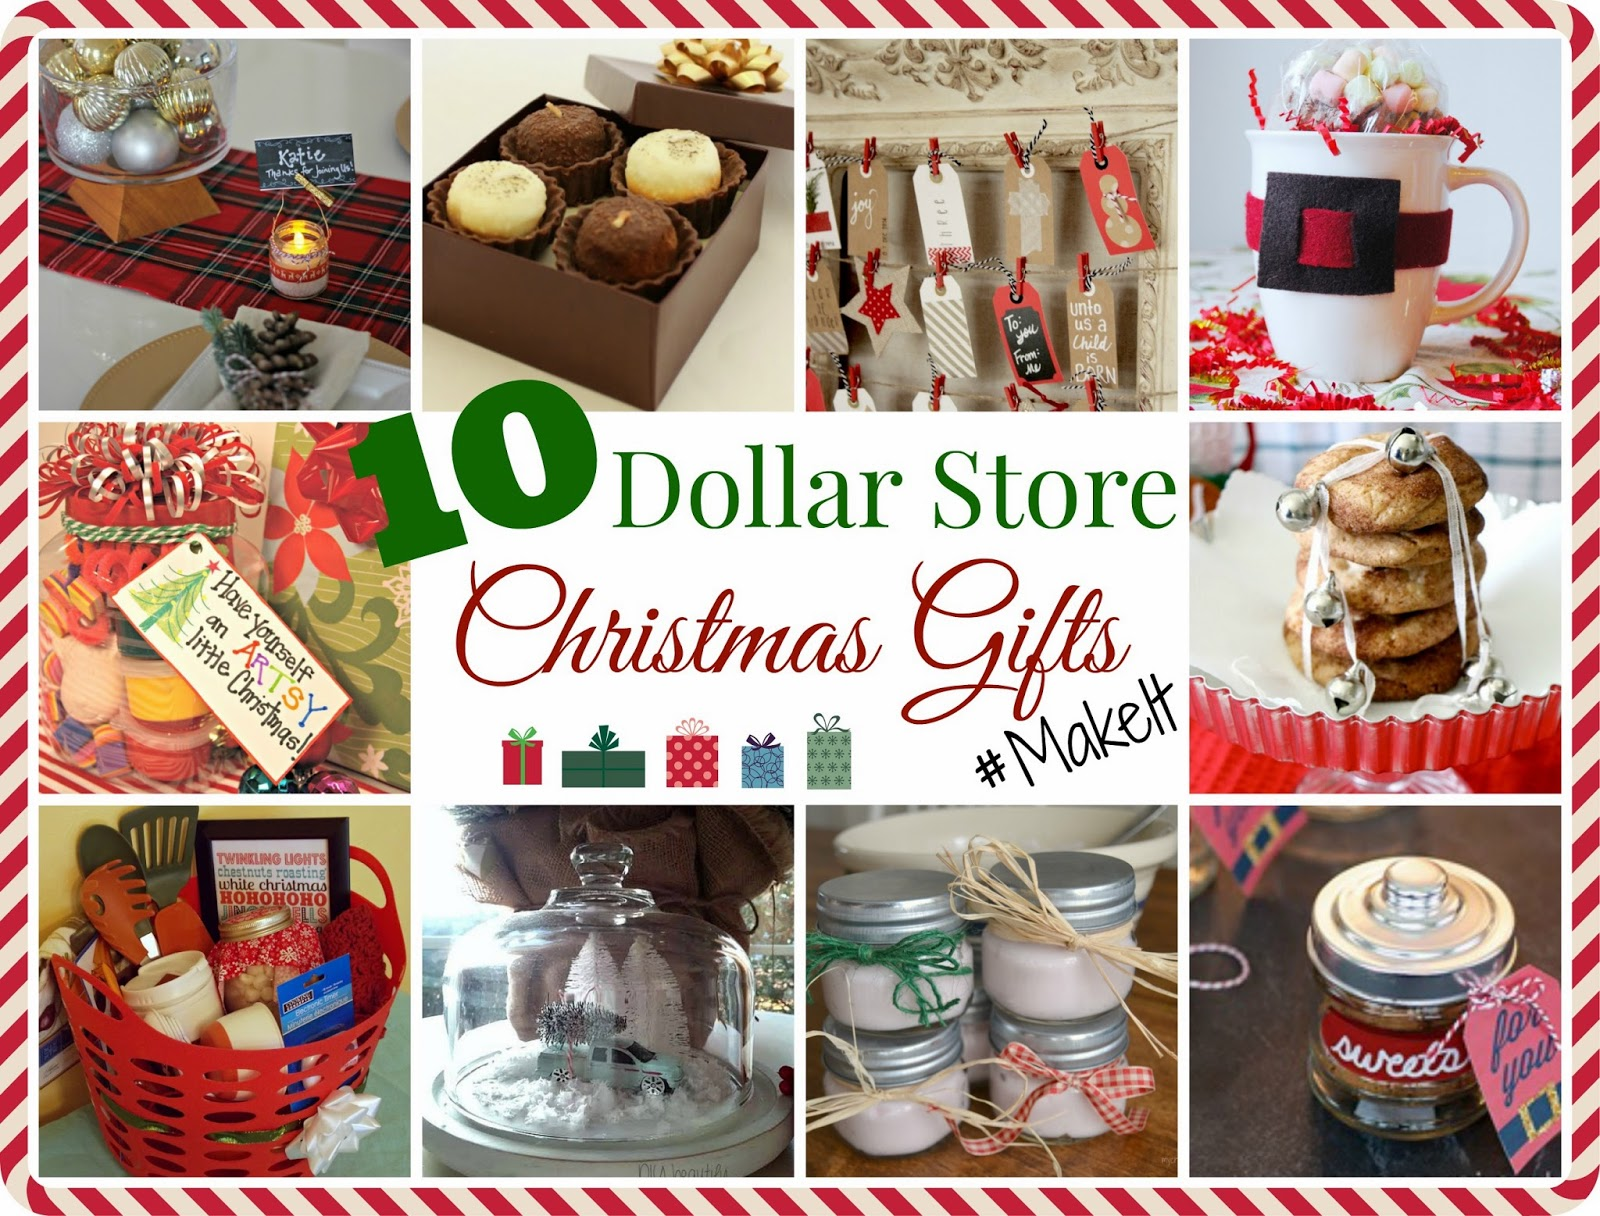 Dollar Store Christmas Gift Challenge at www.diybeautify.com #Makeit